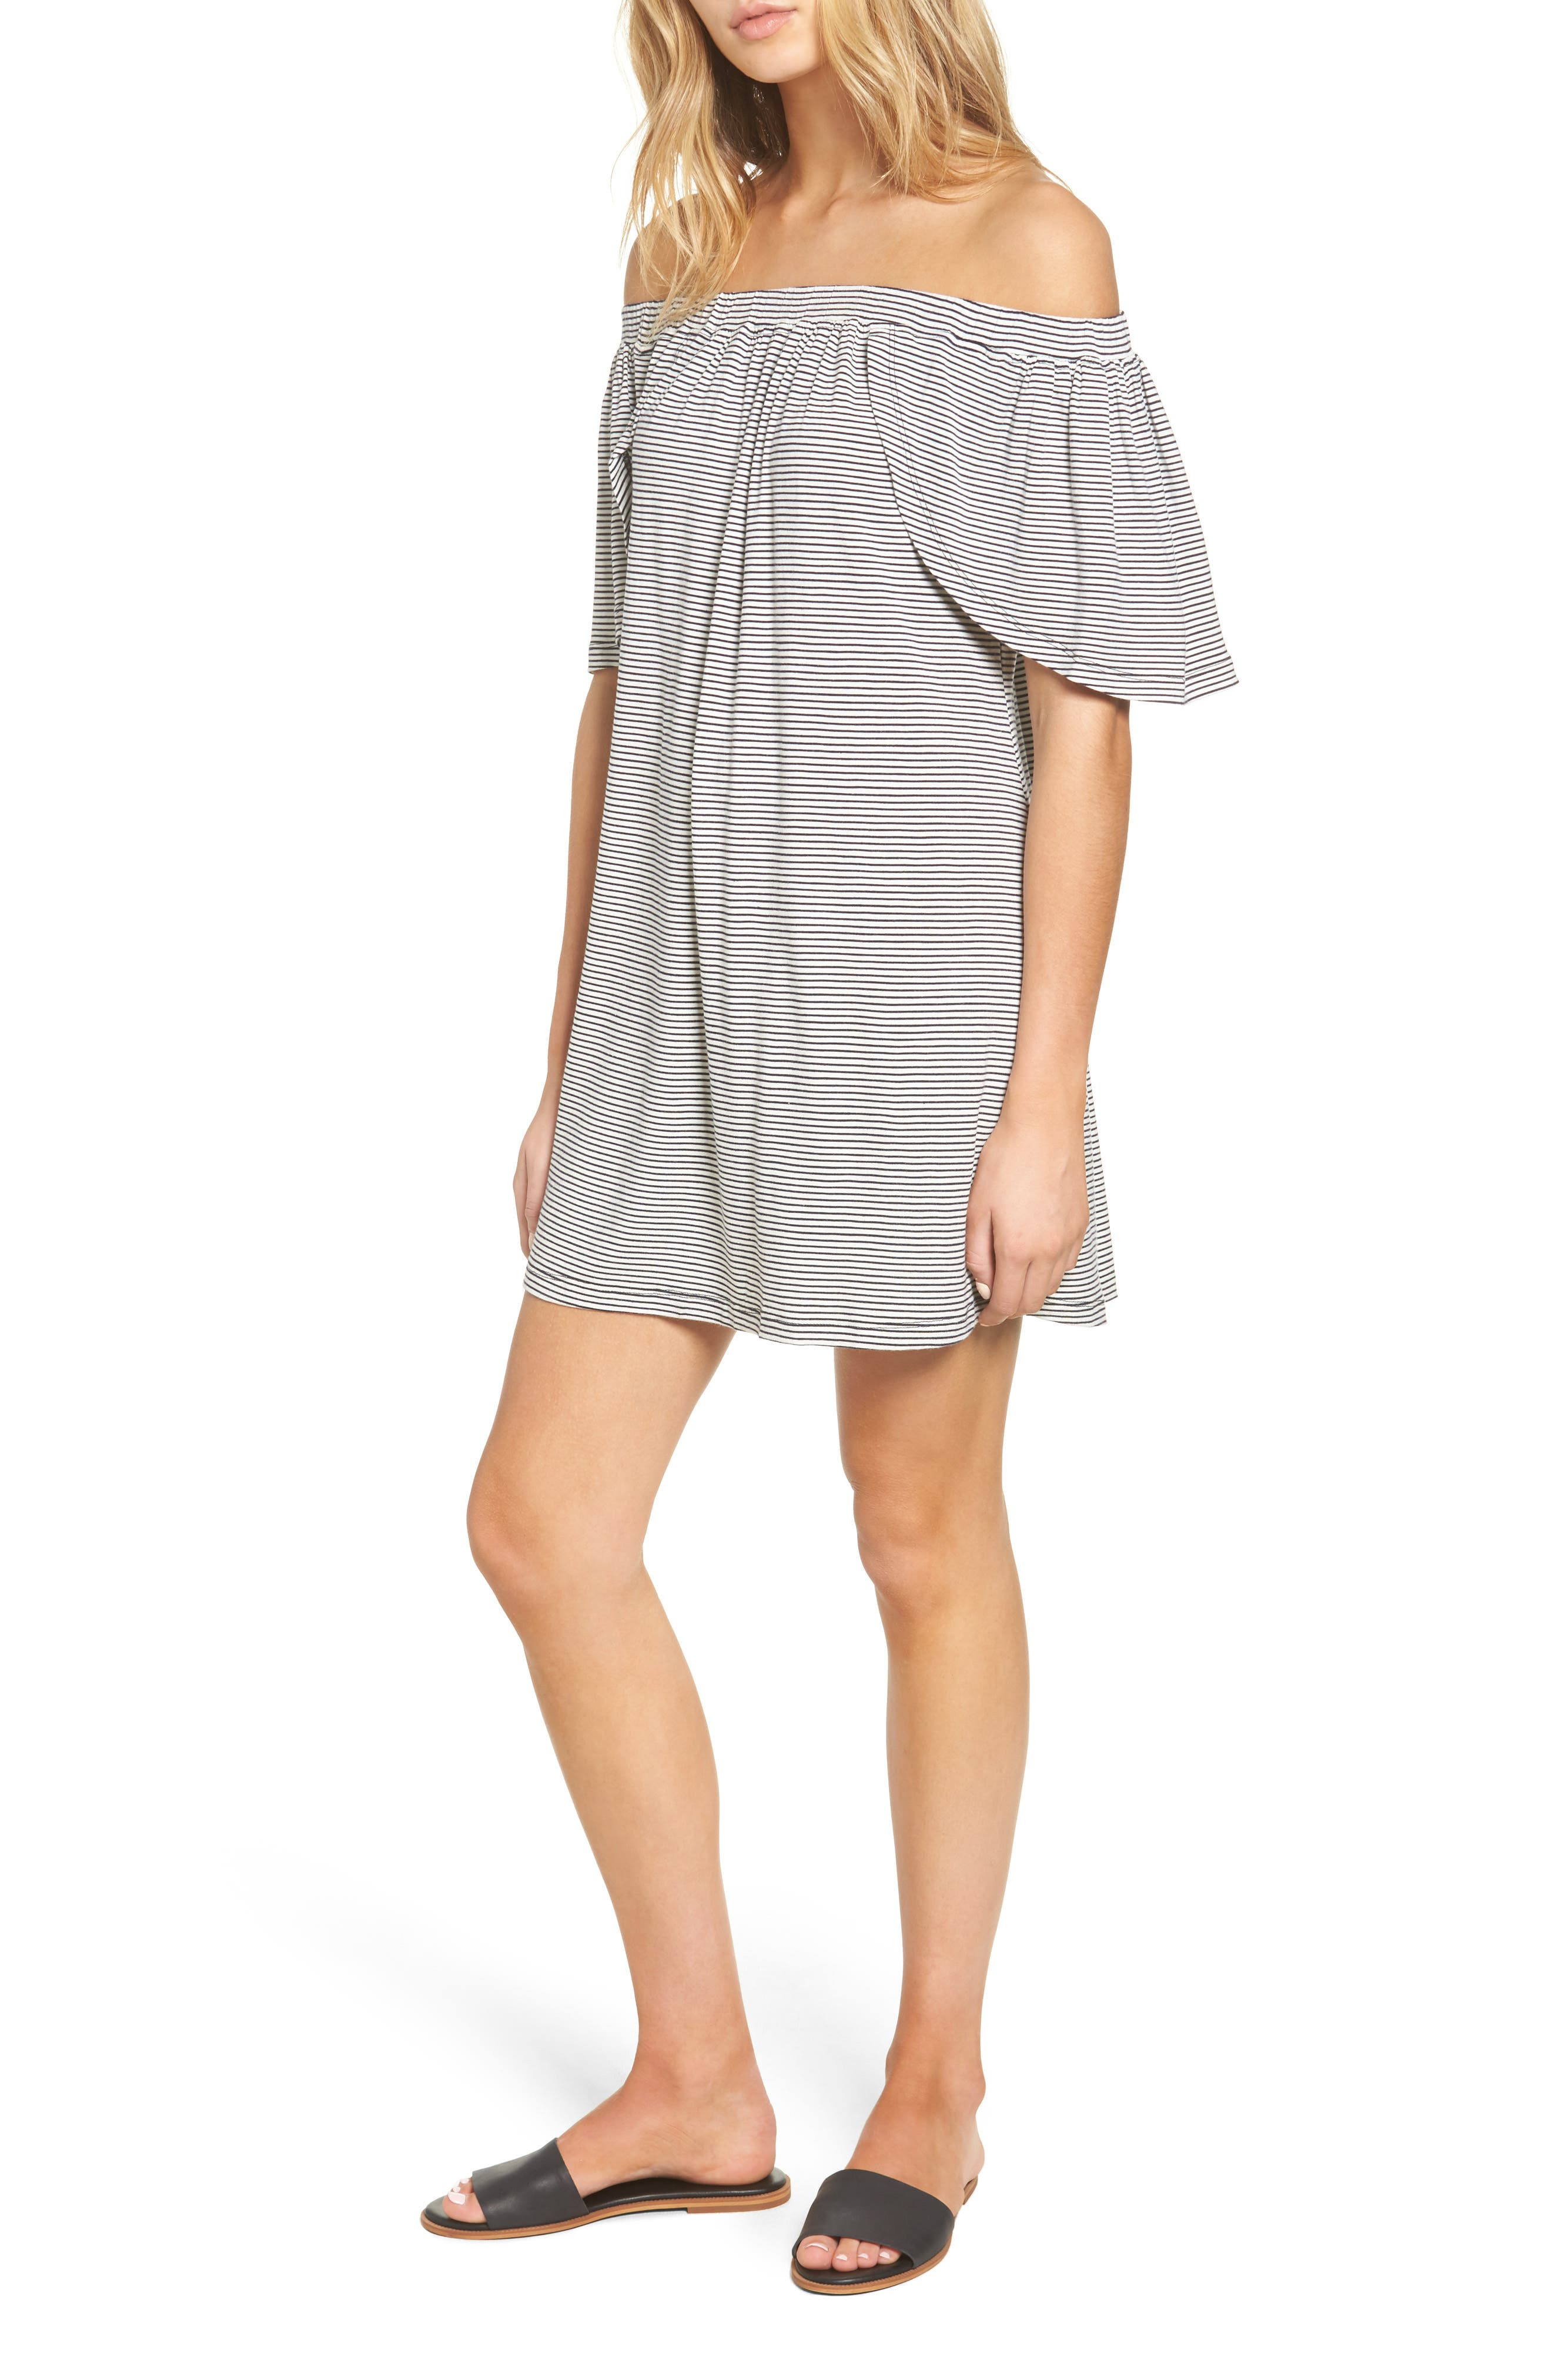 Delacy Marley Off the Shoulder Minidress